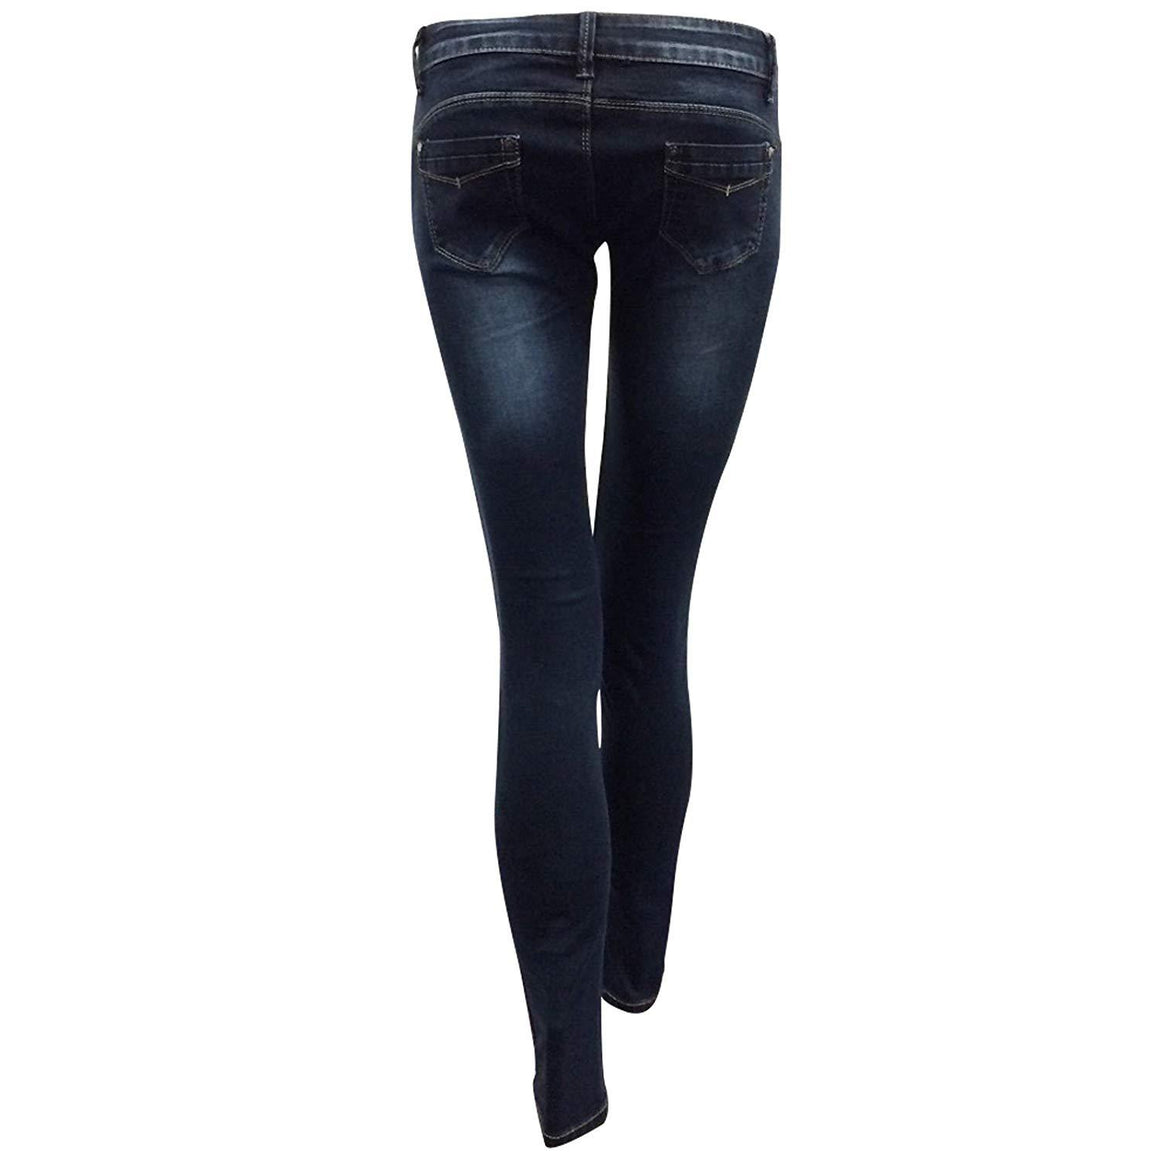 Womens Stretchy Super Skinny Fit Jeans Faded Ripped Denims